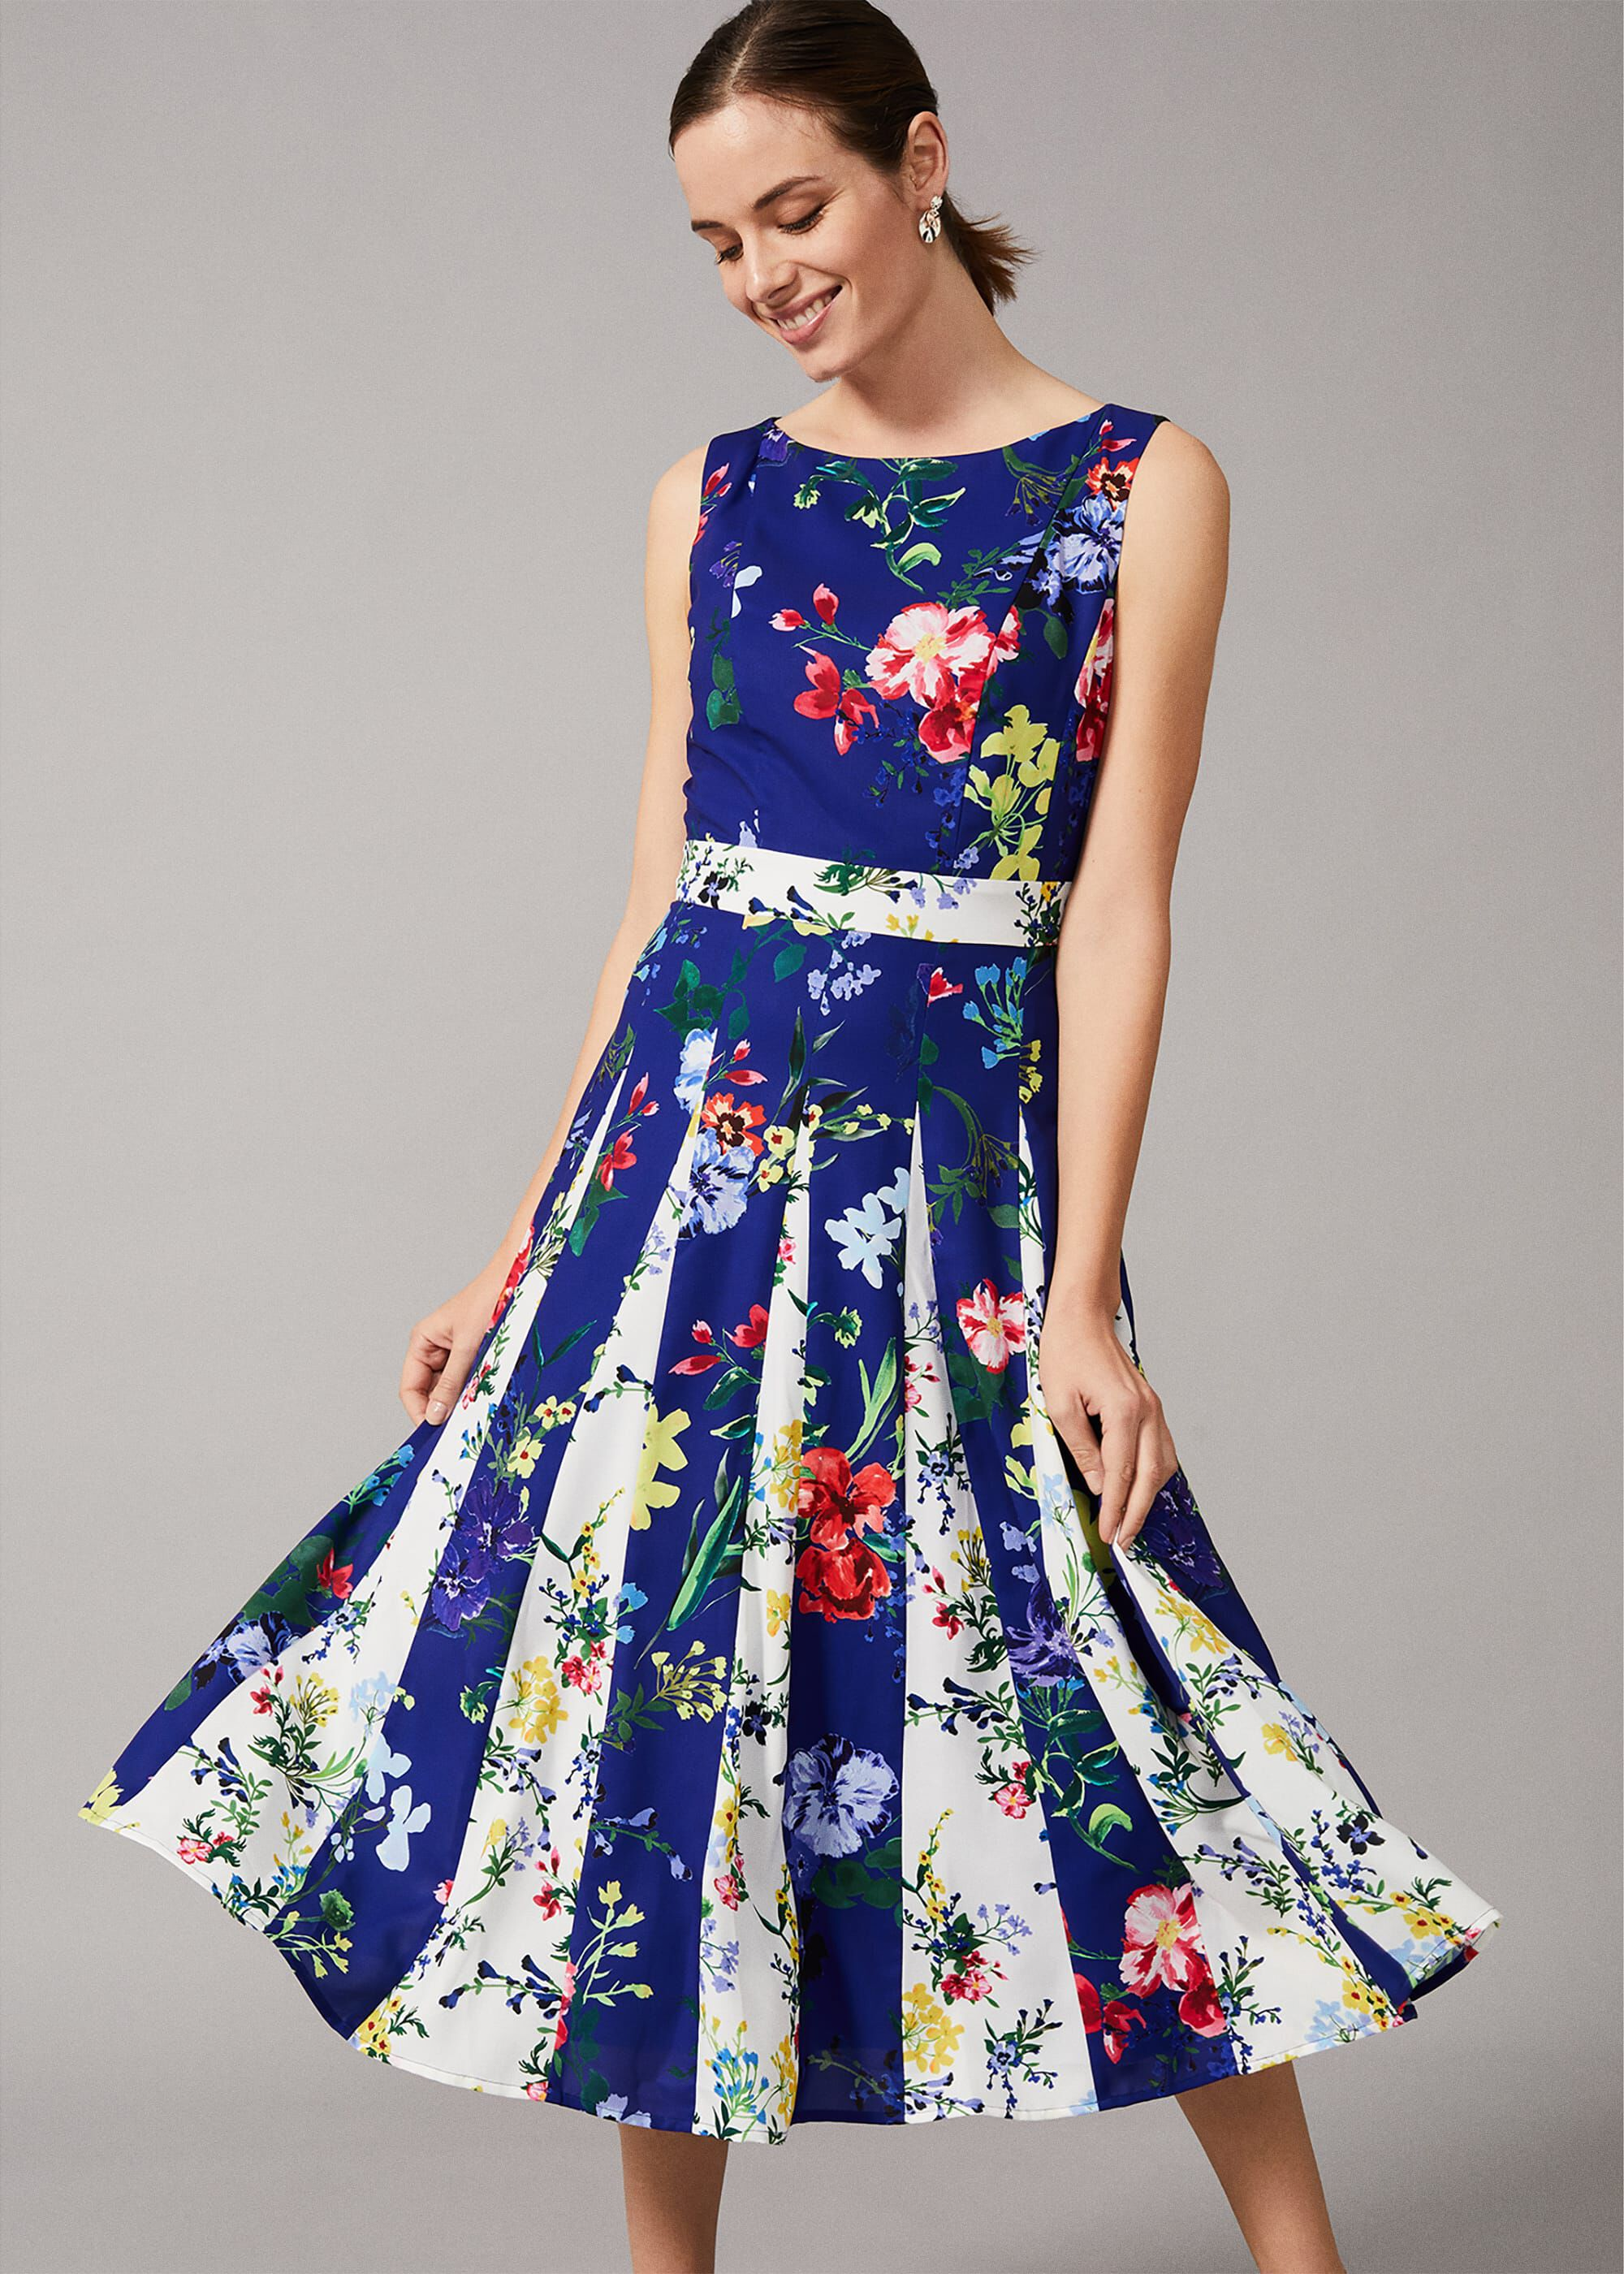 Phase Eight Trudy Patched Floral Dress, Blue, Fit & Flare, Occasion Dress